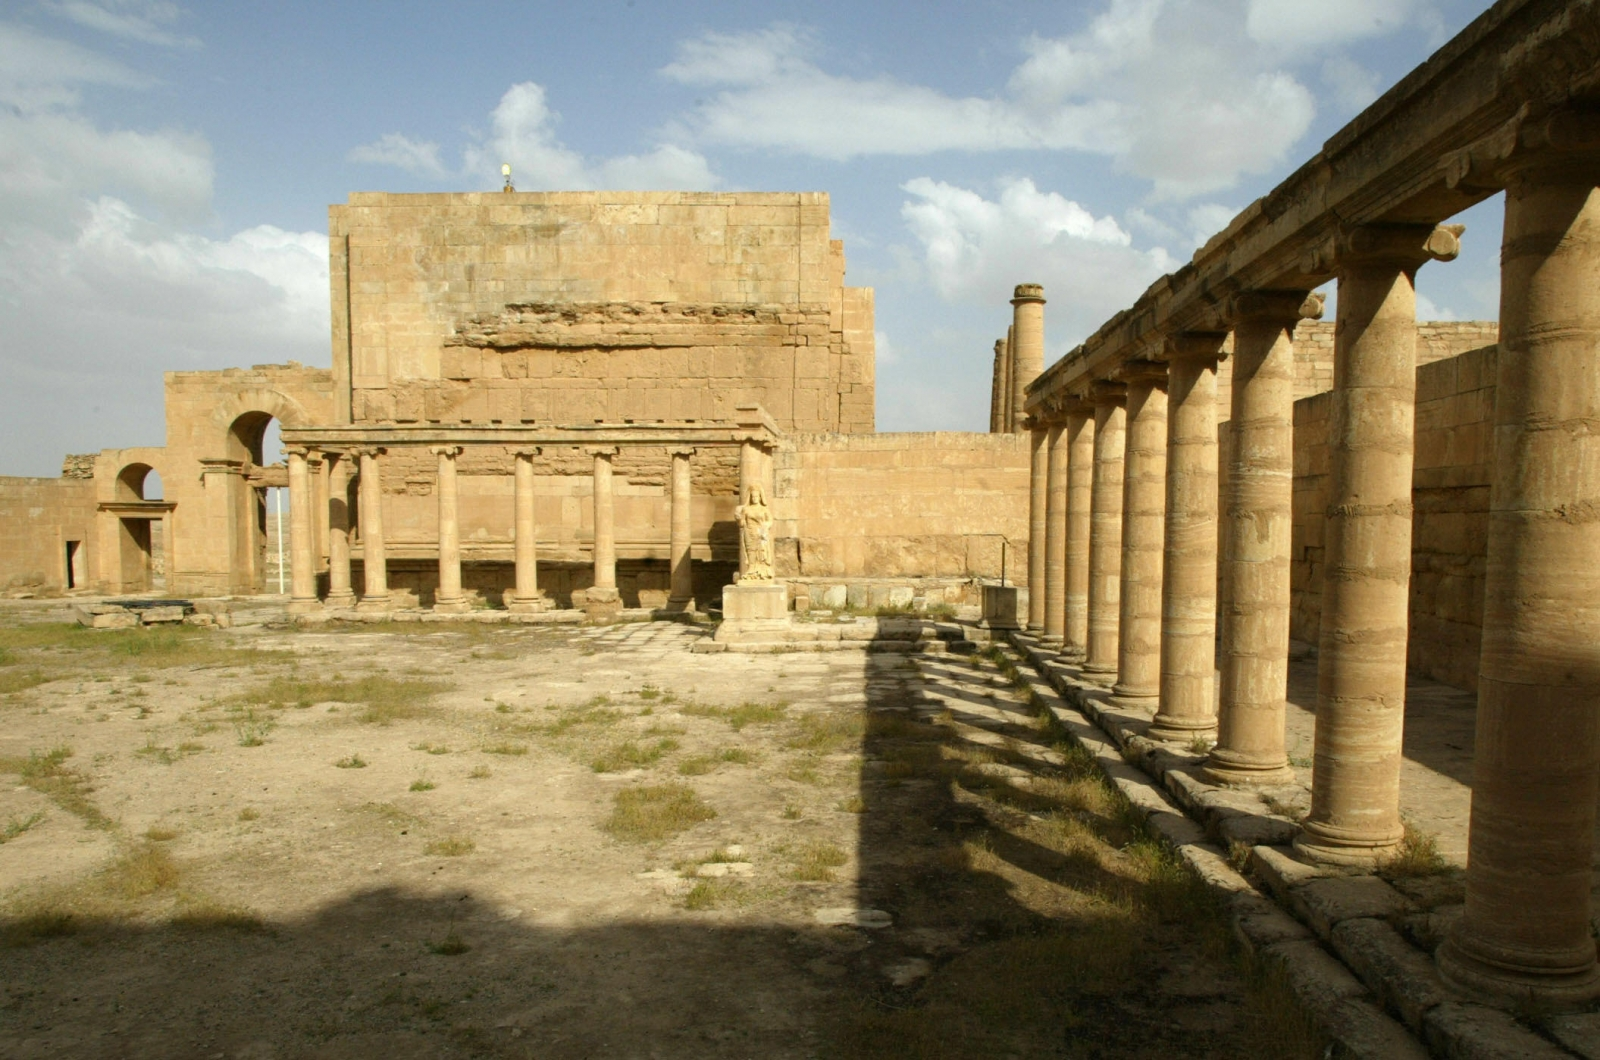 Isis Iraq: Bulldozing of Nimrud and Hatra disputed by ...